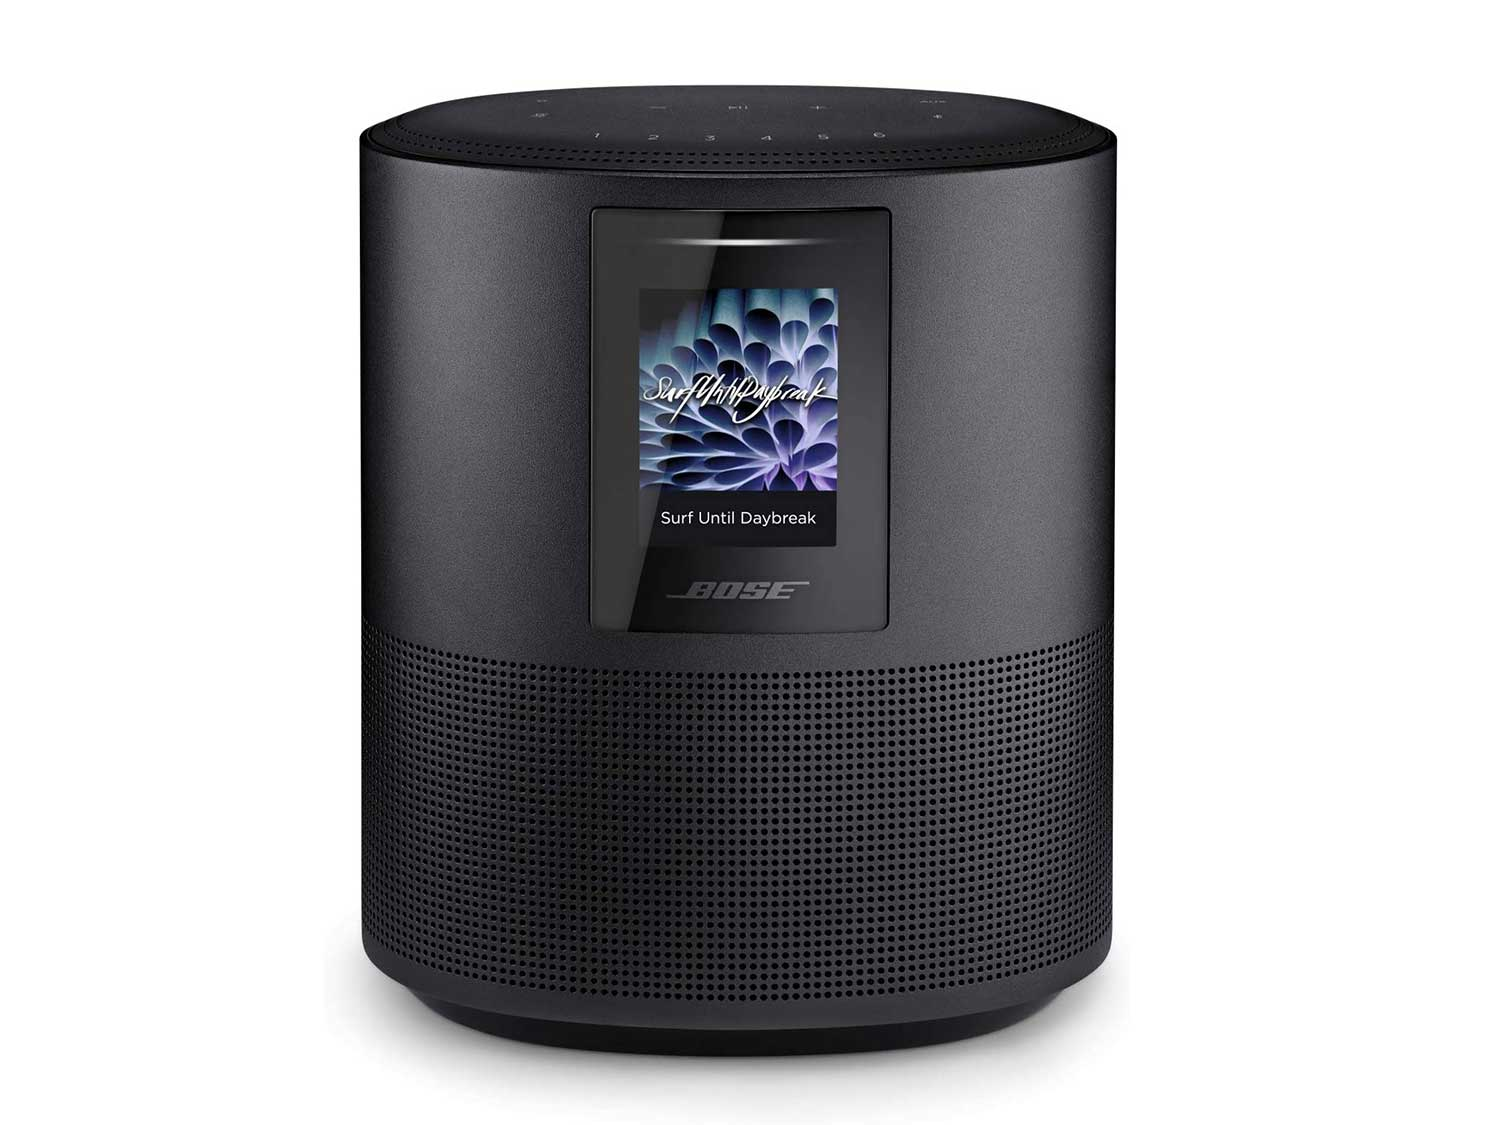 Bose Home Speaker 500 with Alexa Voice Control Built-in, Black